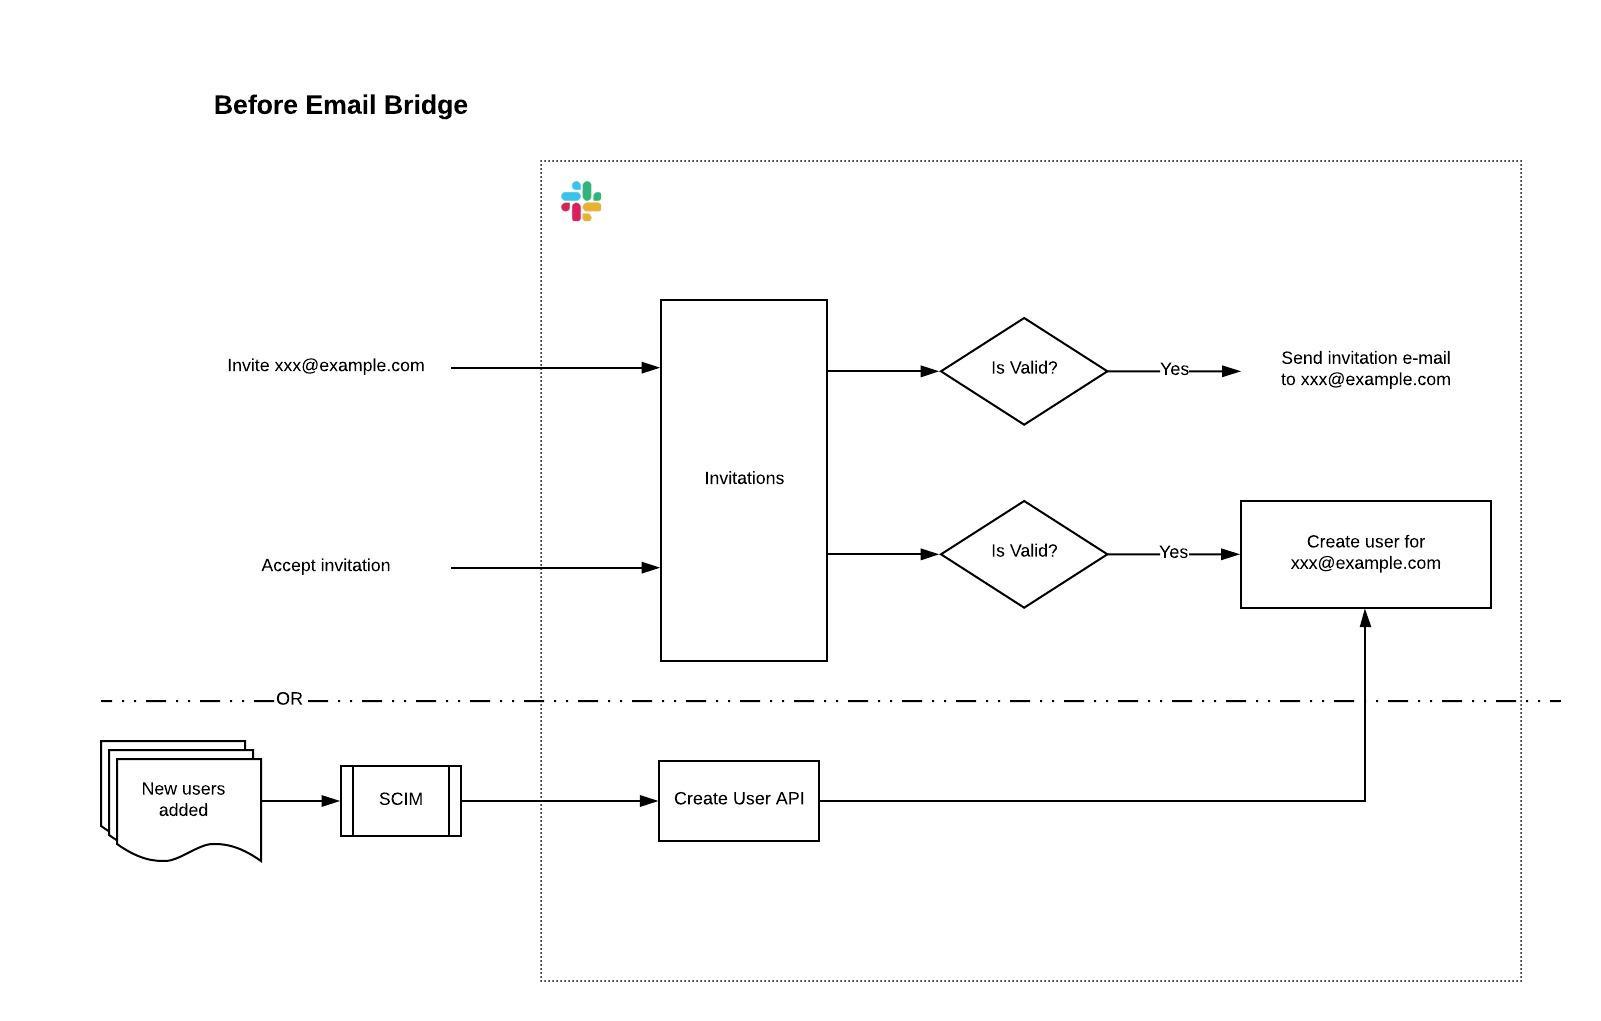 Invite flow before email bridge